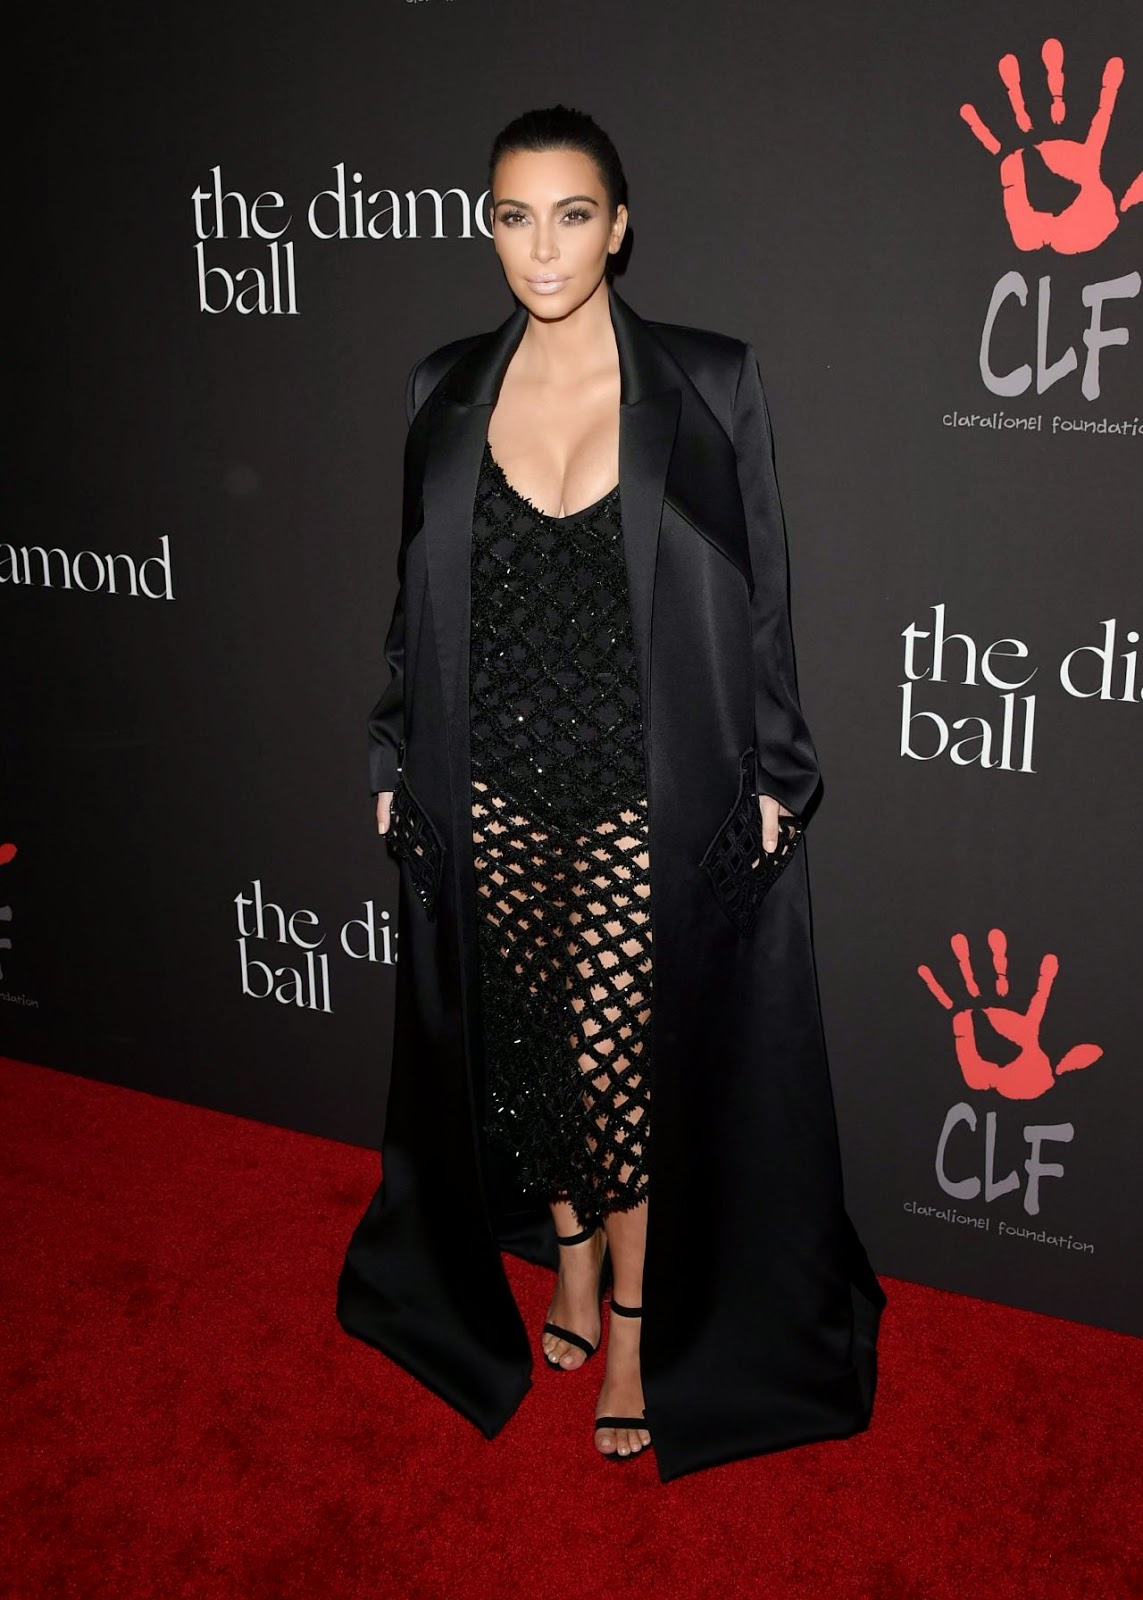 Kim Kardashian in a sheer sequinned dress at Rihanna's Diamond Ball Benefit in Beverly Hills